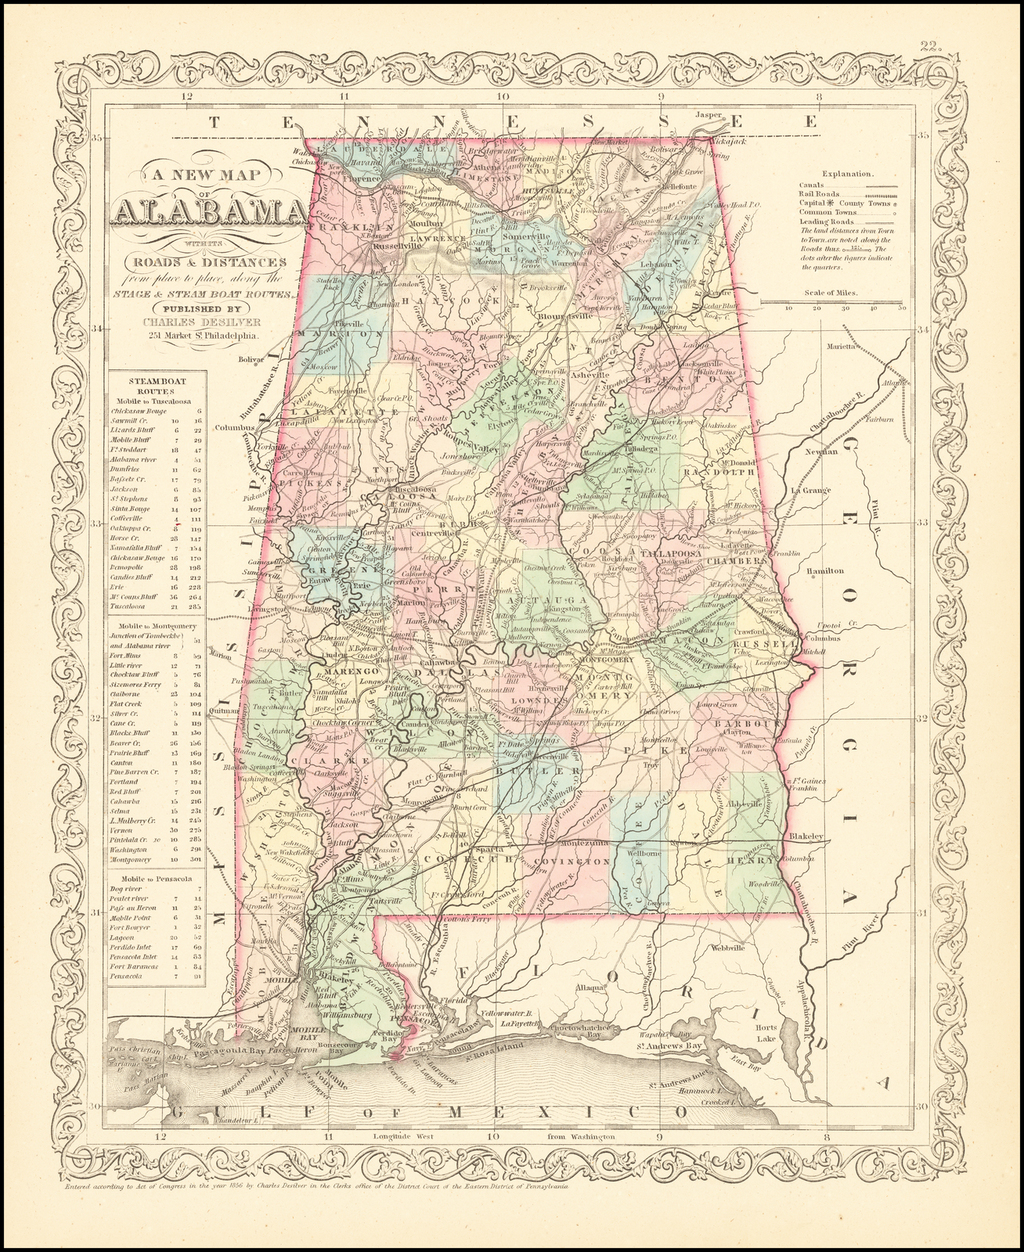 A New Map Of Alabama with its Canals, Roads, Distances from Place to Place, along the Stage & Steam Boat Routes  By Charles Desilver